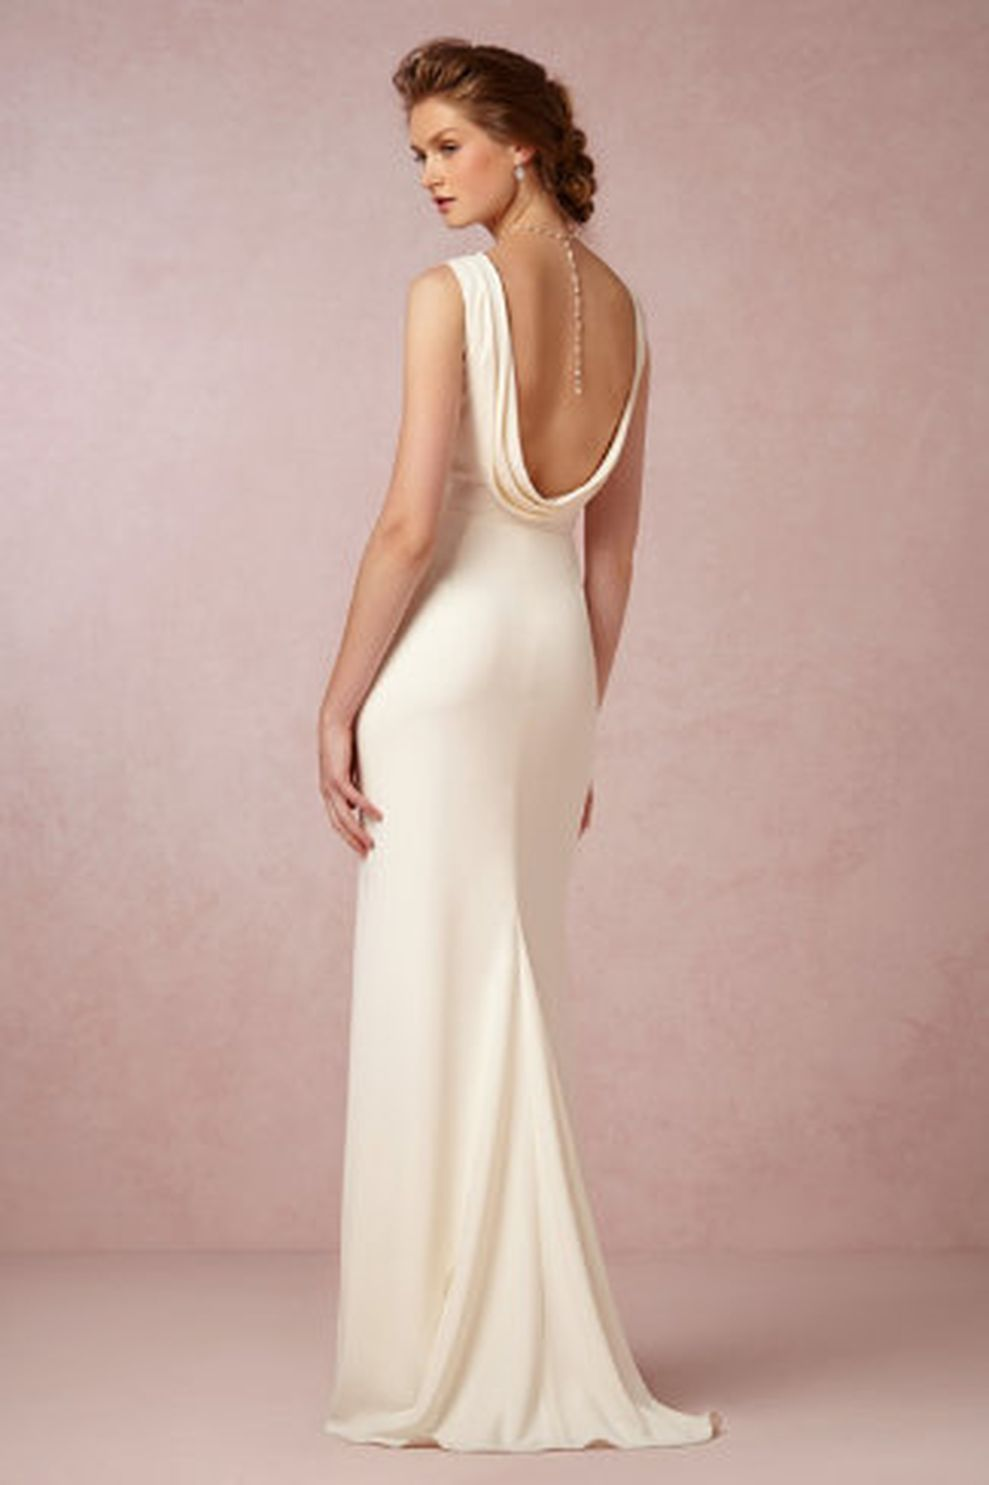 Wedding dresses for 2nd marriage   Elegant Vineyard Wedding Dresses Ideas Perfect for Casual